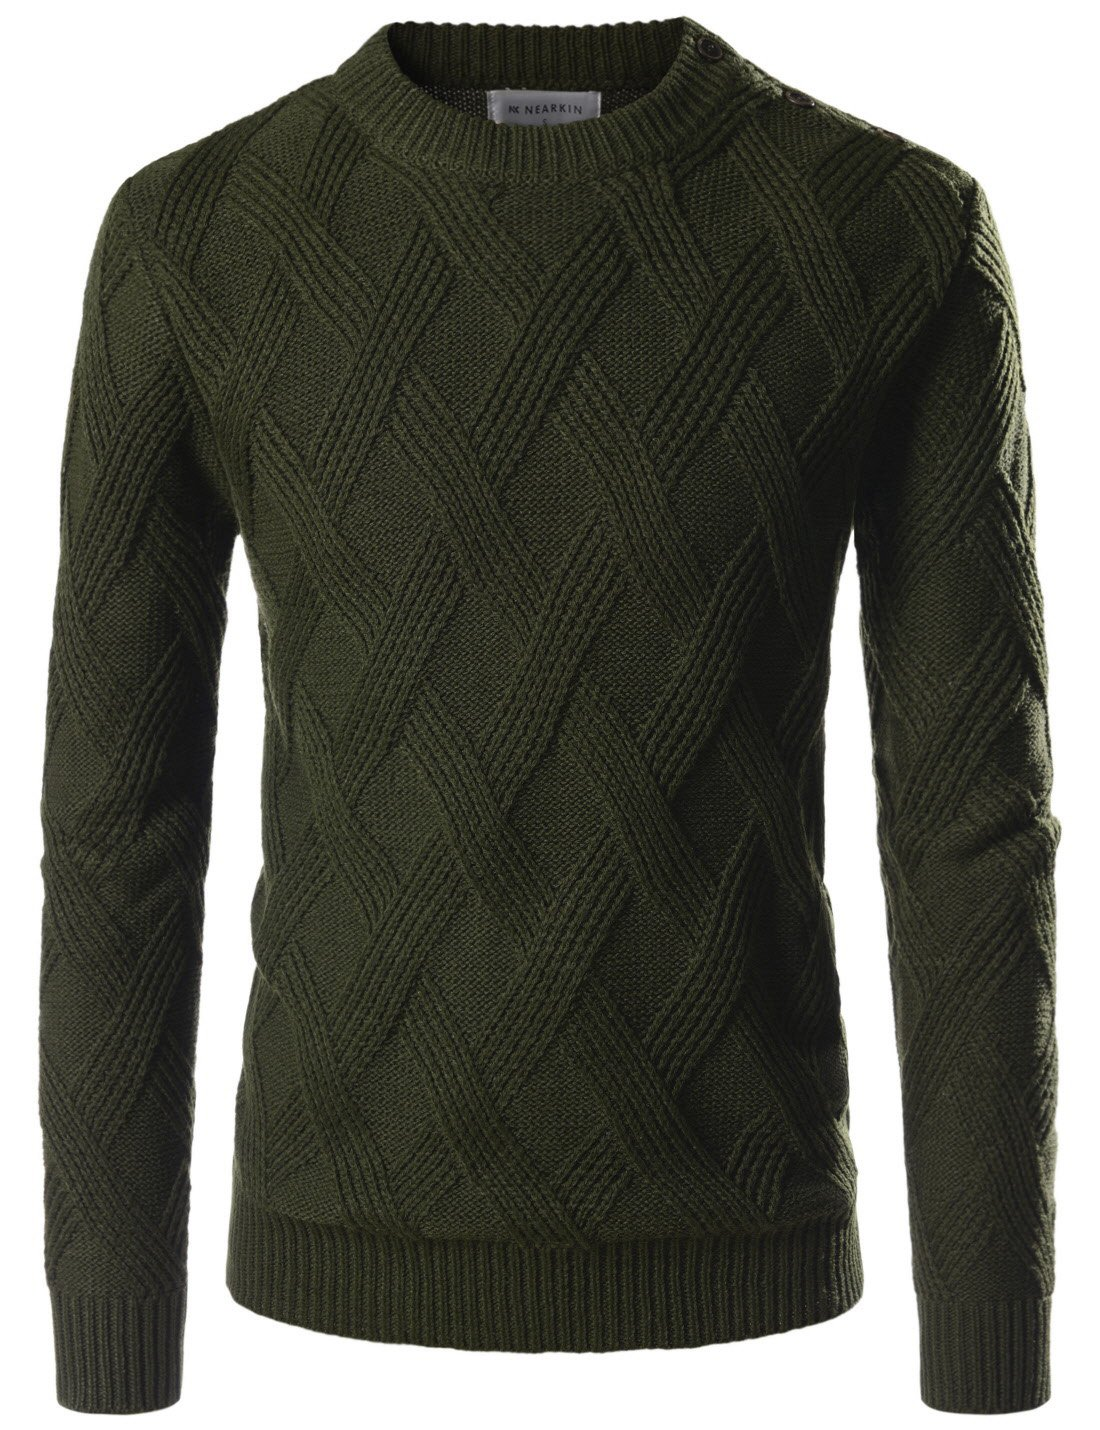 NEARKIN (NKNKKNB704) Roundneck Fisherman Knitted Wool Blend Long Sleeve Sweater Hunter Green US L(Tag size L)